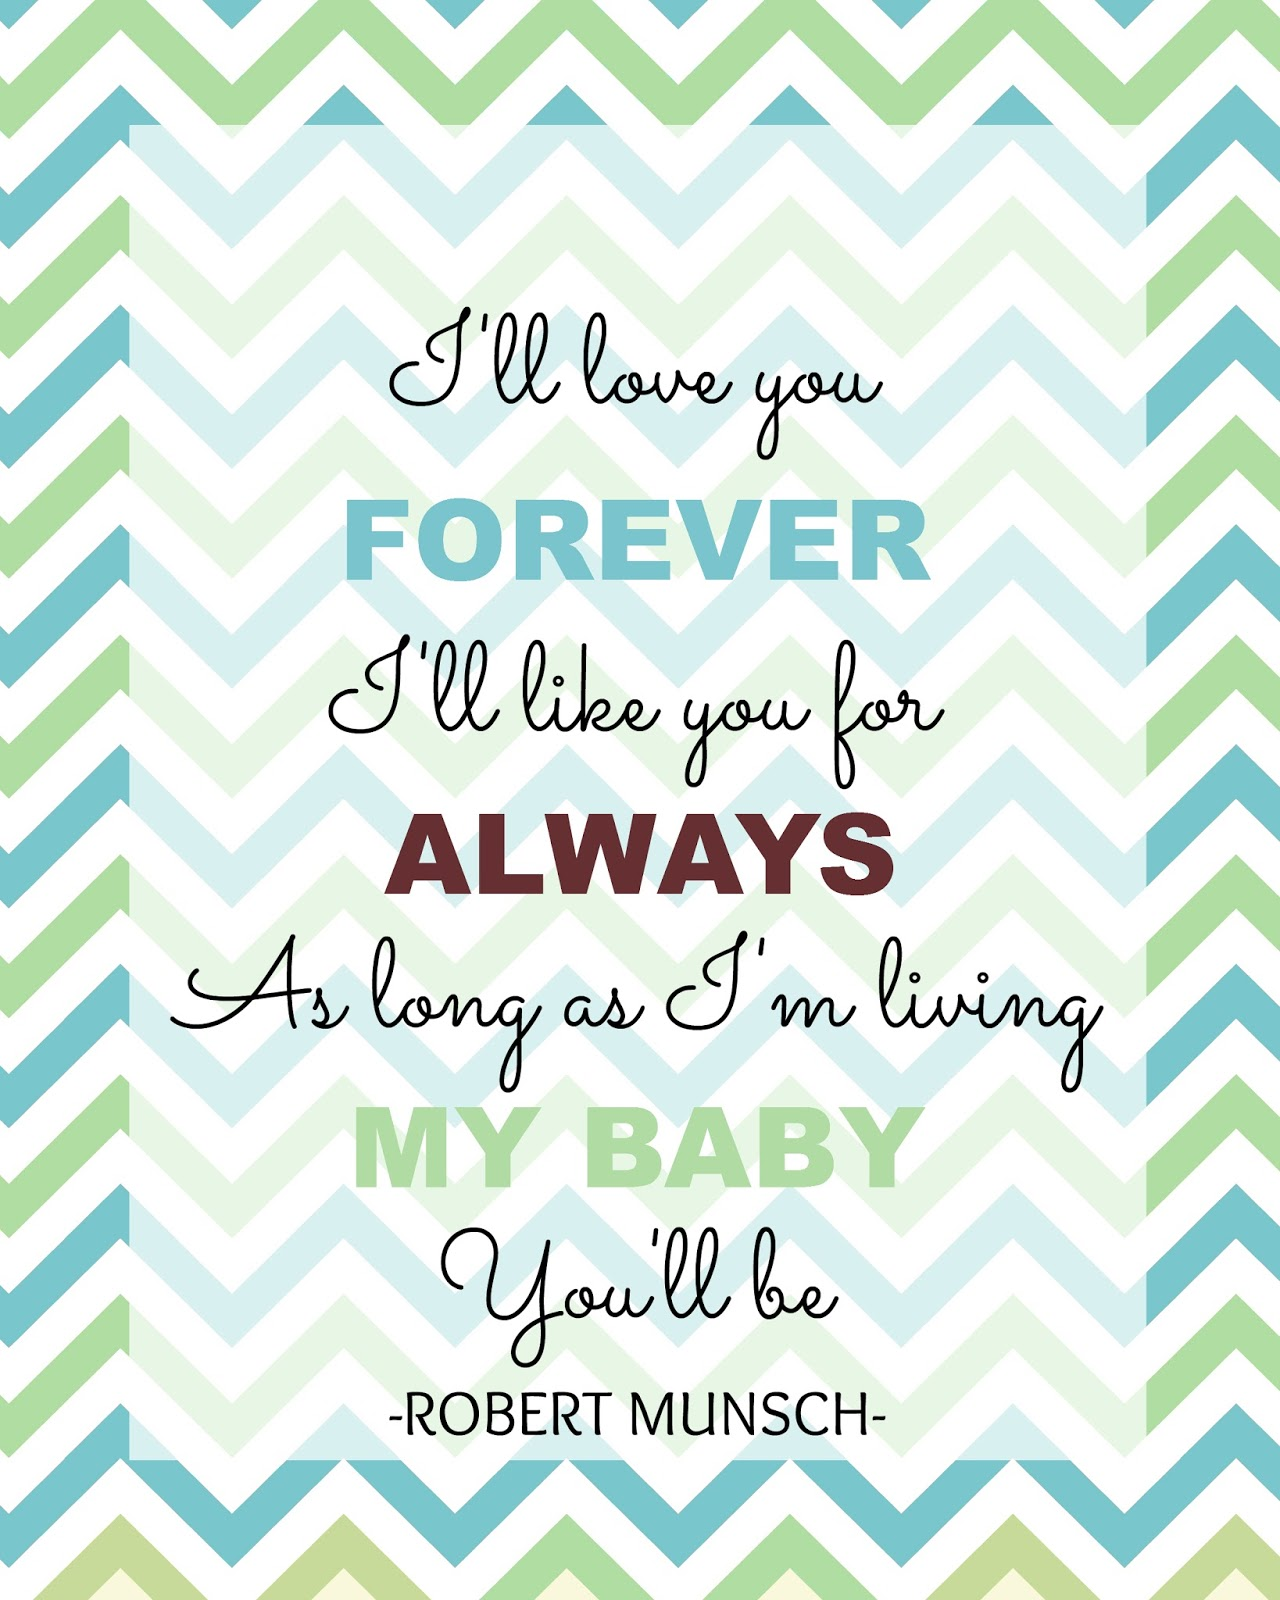 I Ll Love You Forever Quote: Ill Always Love You Quotes. QuotesGram